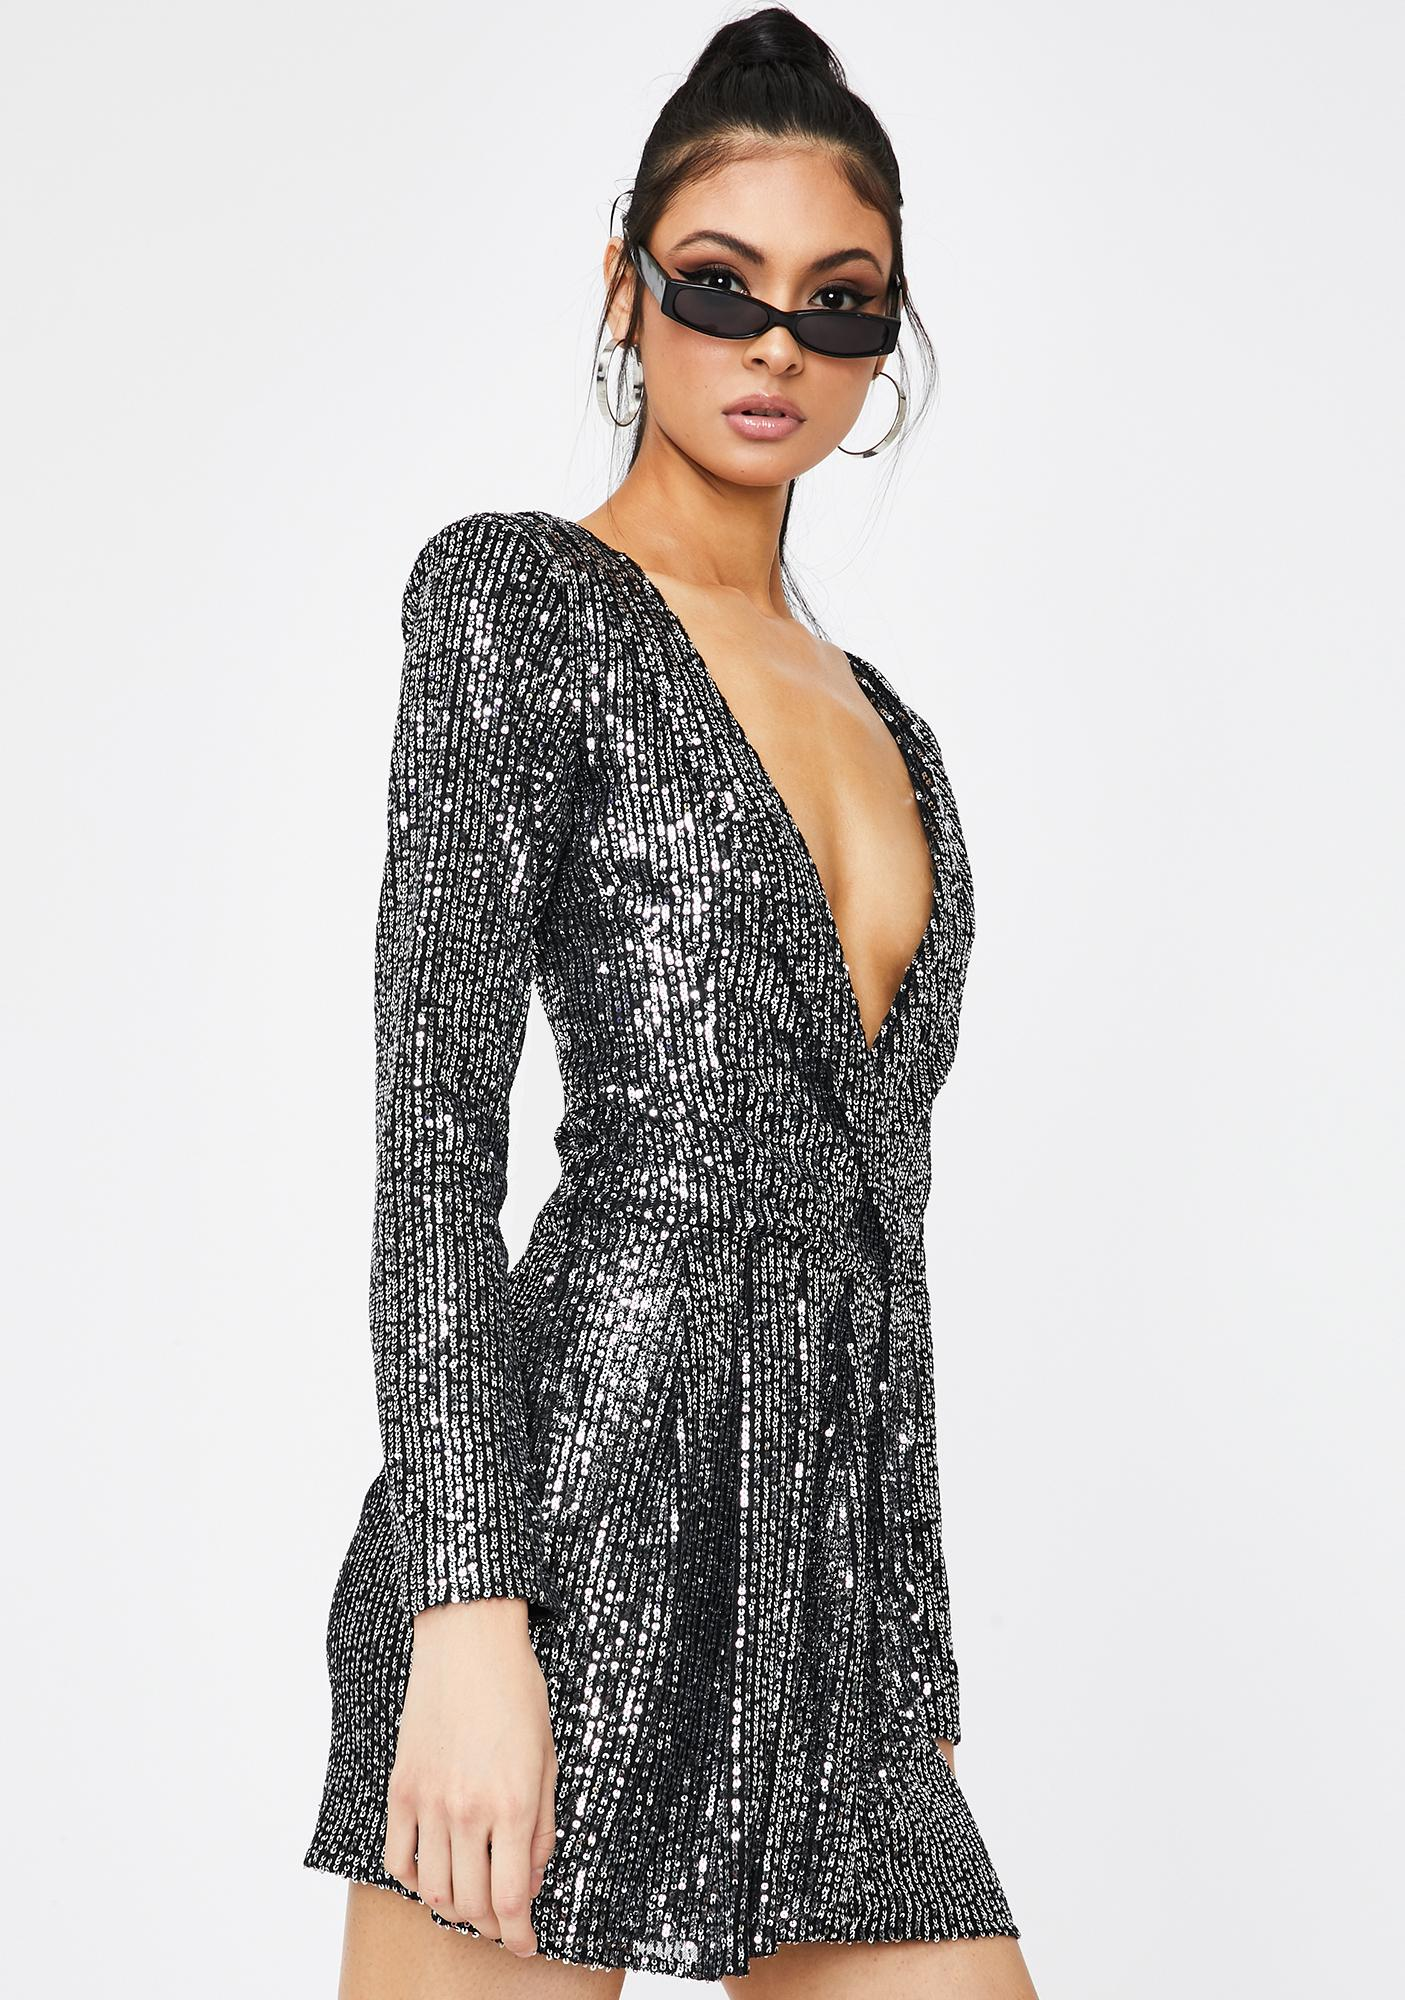 Lioness Make Your Move Sequin Dress